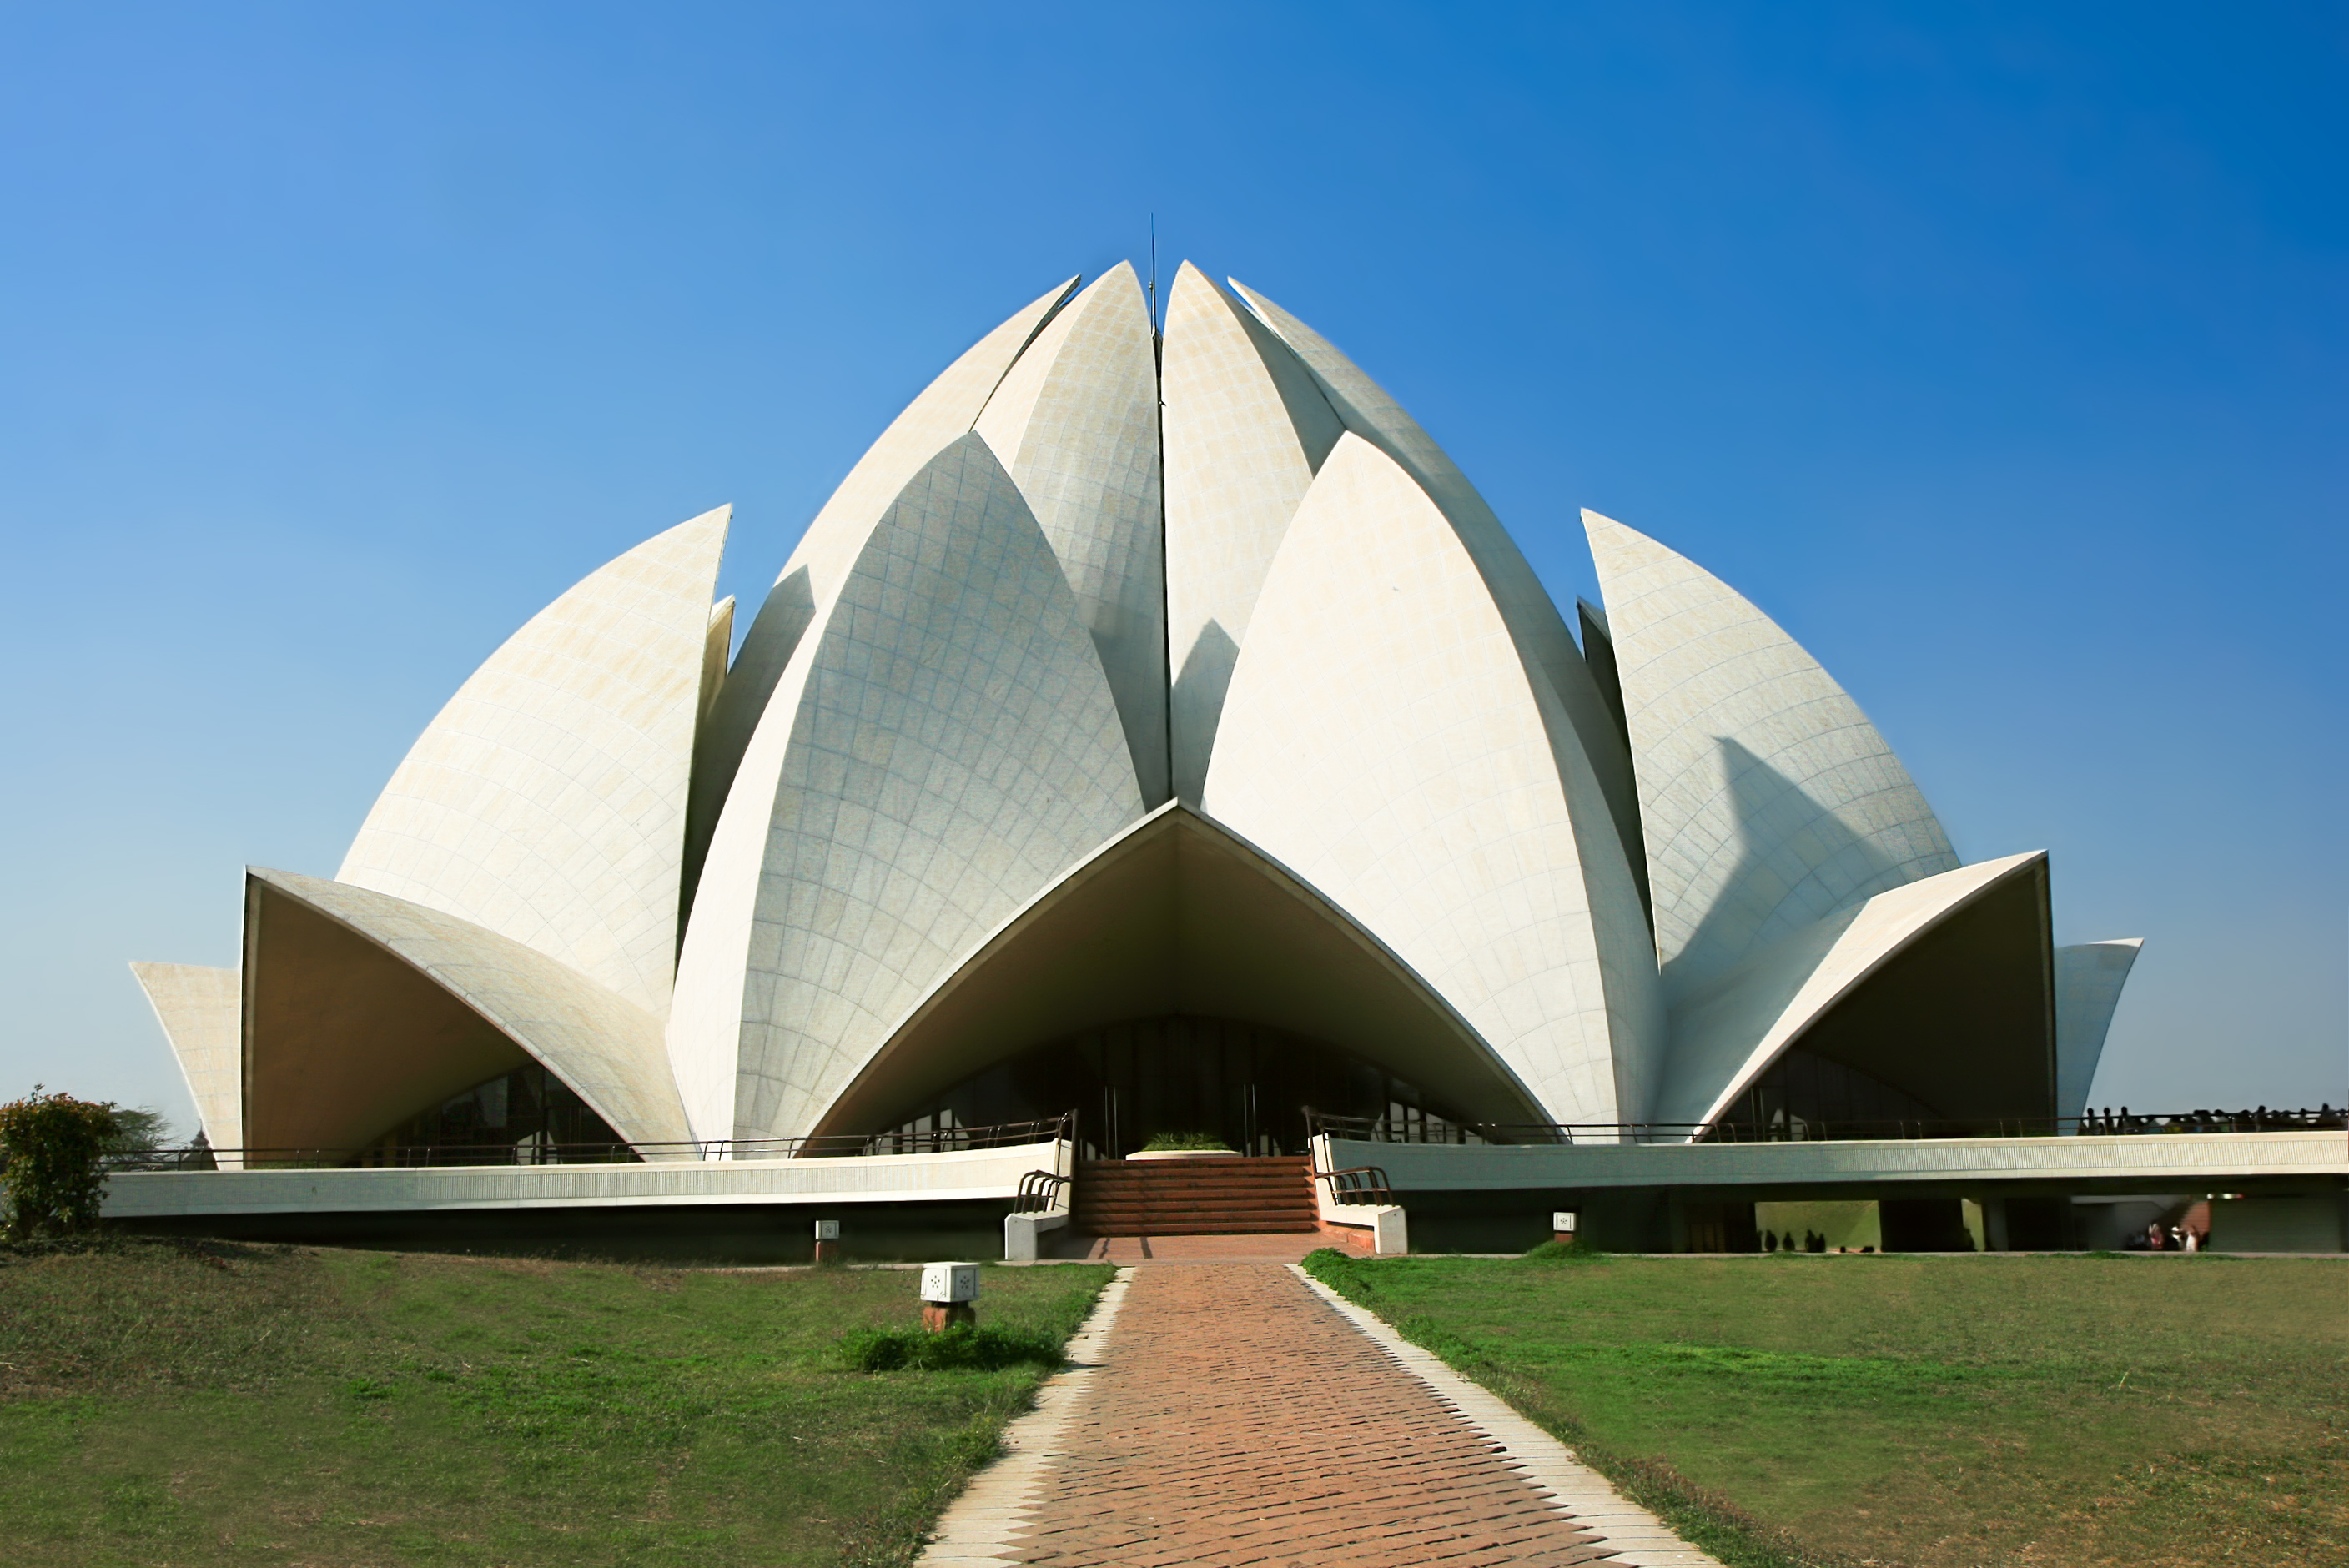 Bahai Lotus Temple New Delhi Delhi Jq5qn8 Ratings